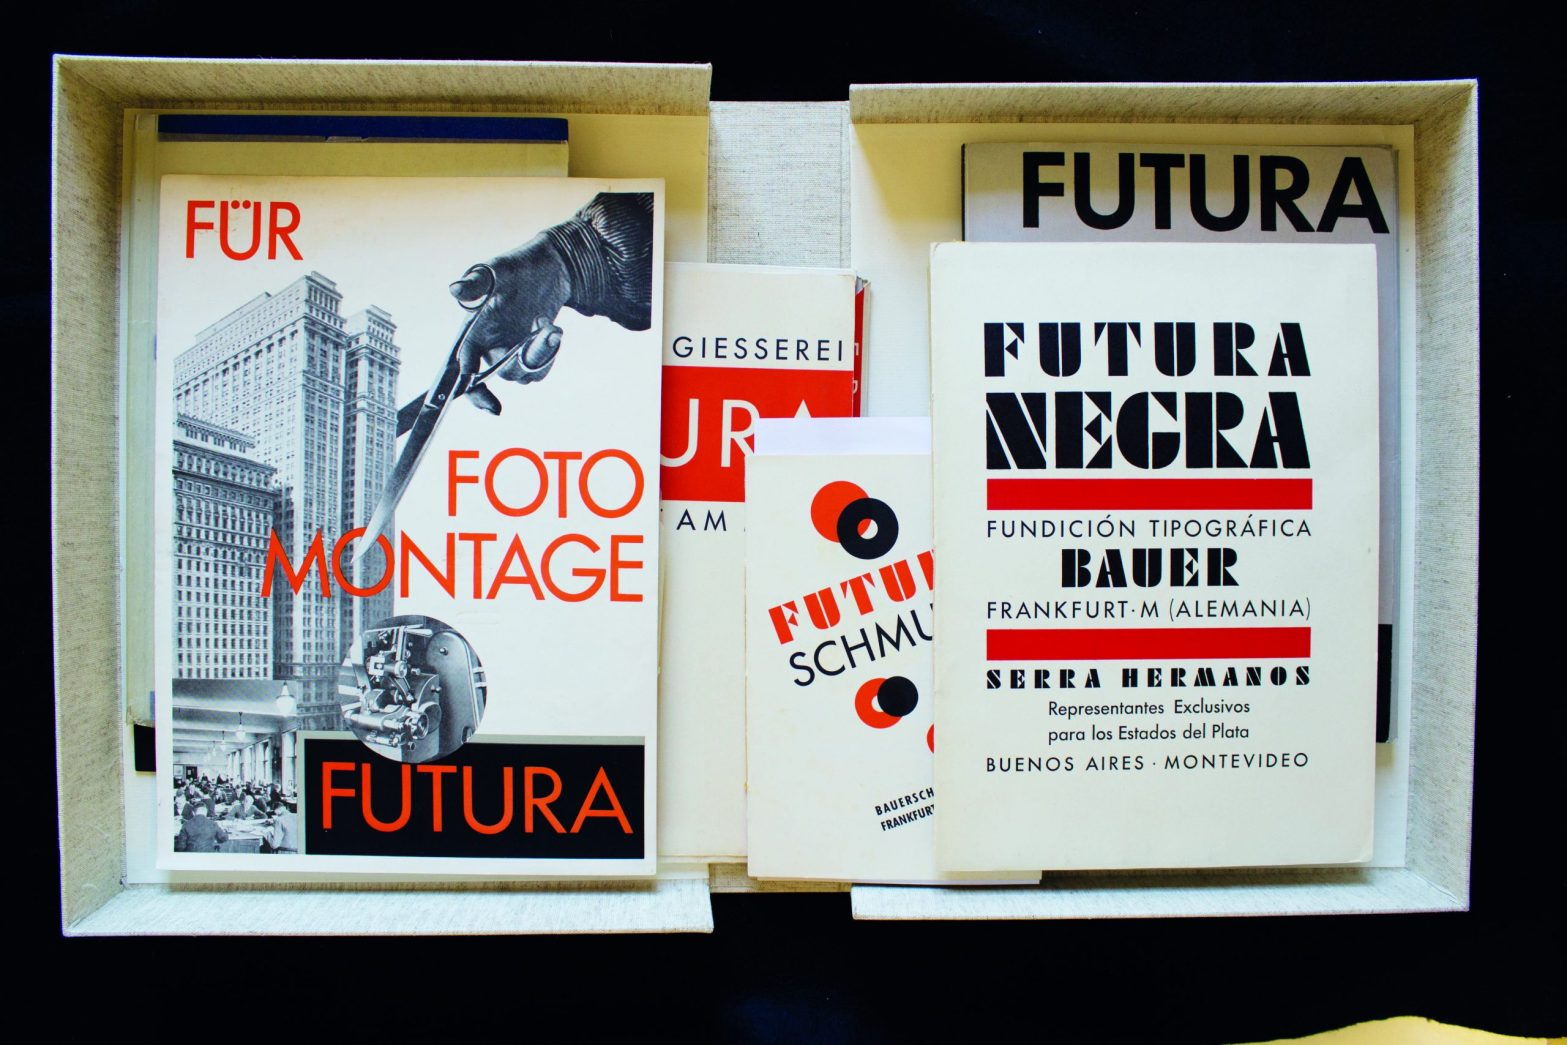 Thumbnail for The Daily Heller: The Futura is Now (Redux)